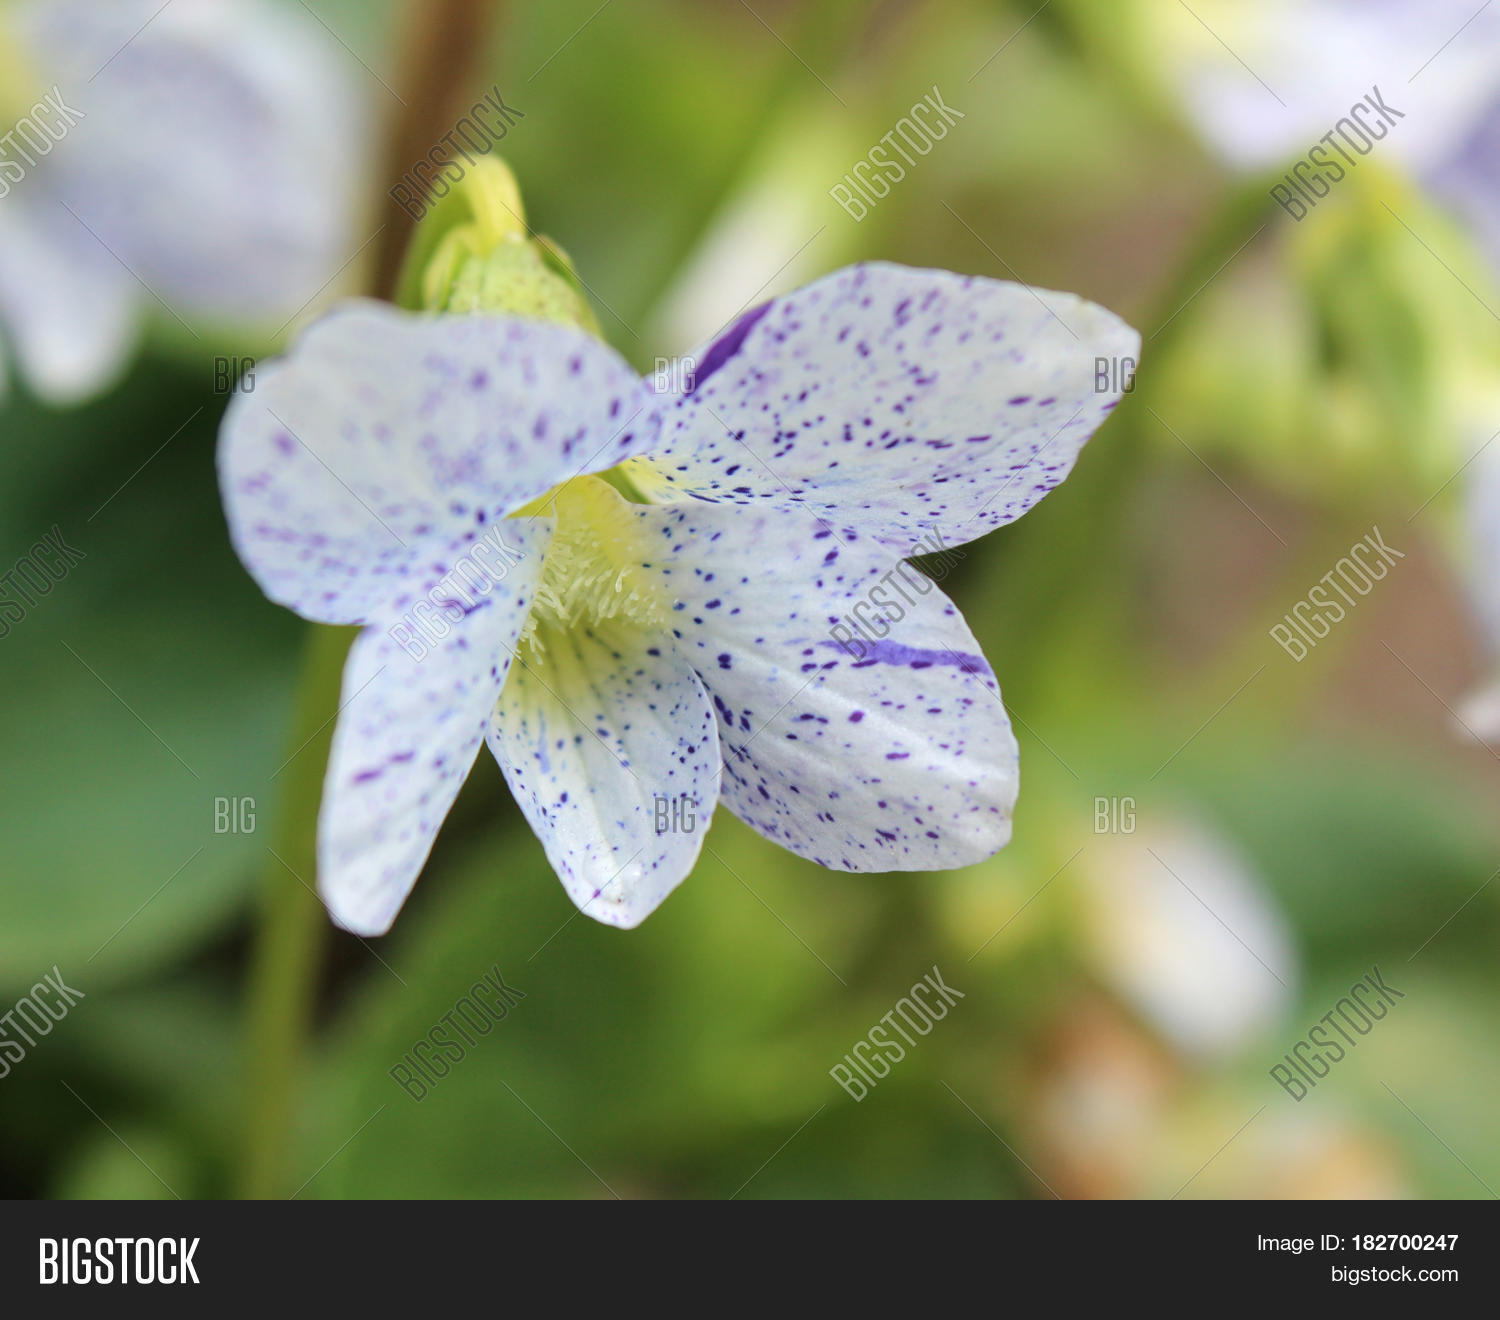 Unusual White Spotted Image Photo Free Trial Bigstock